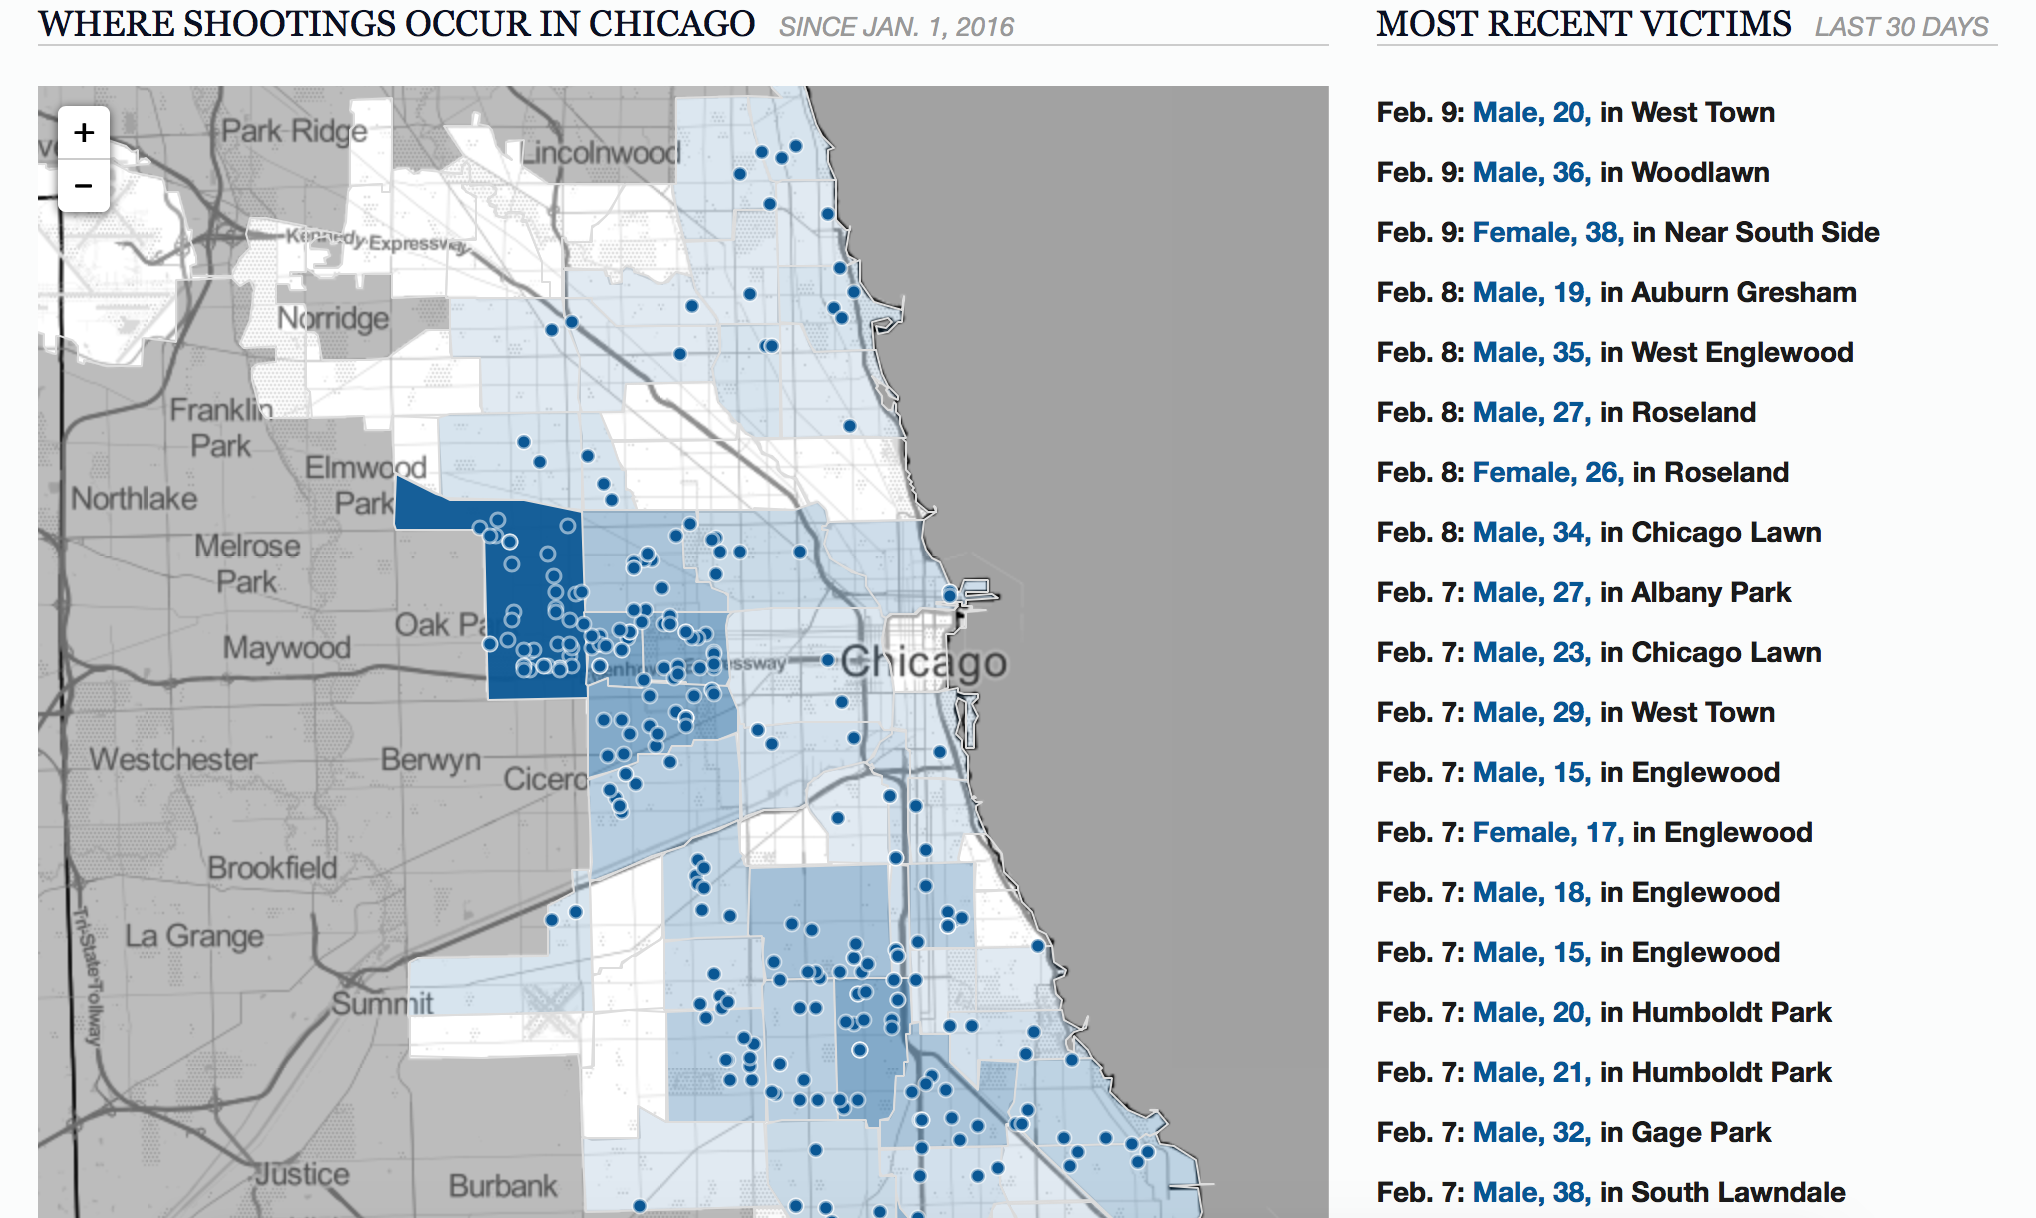 East Side Chicago Shooting Victims Update – Feb. 12, 2016